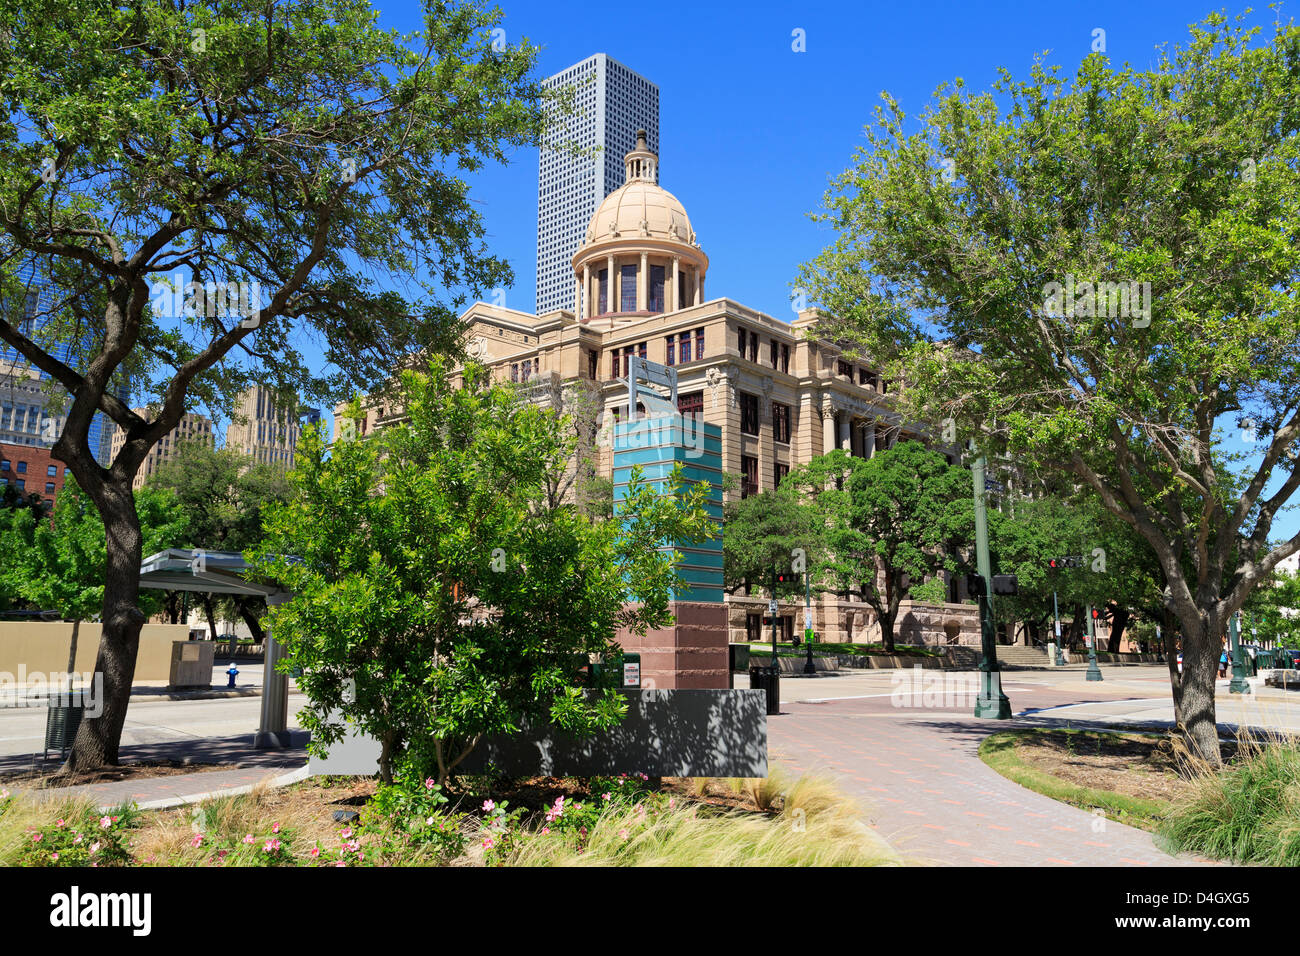 Harris County 1910 Courthouse, Houston,Texas, USA - Stock Image